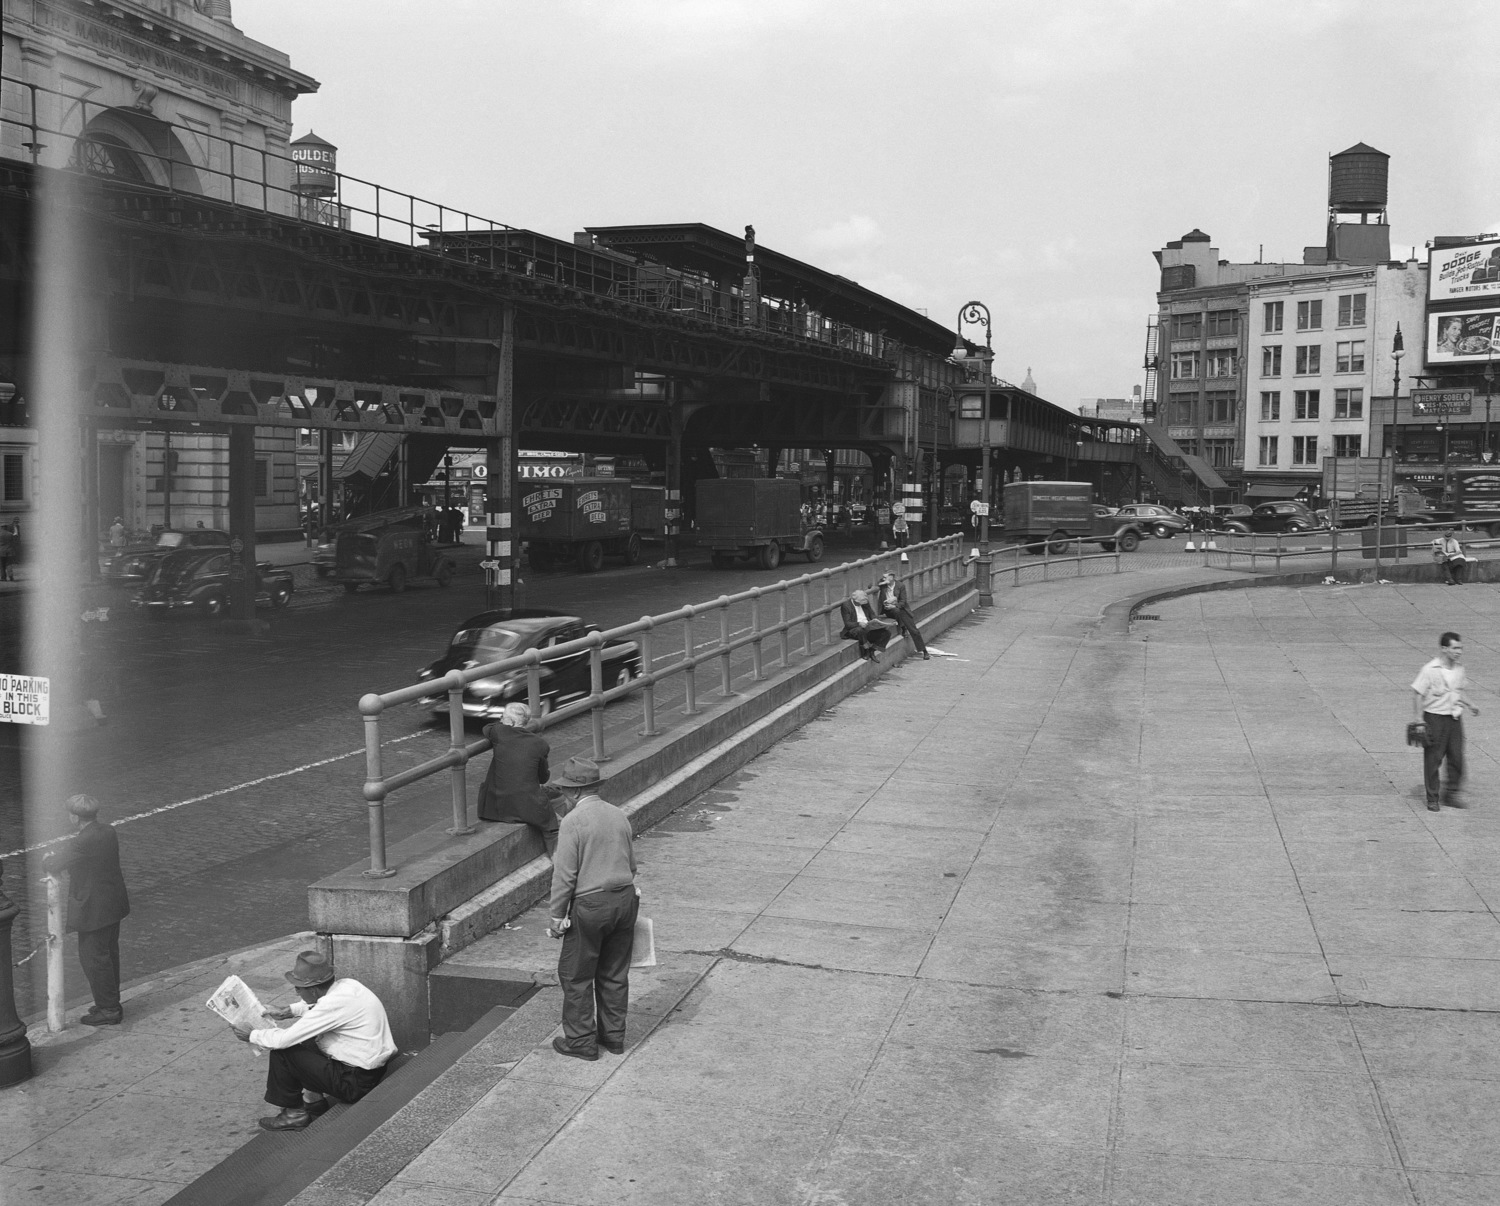 The photo shows the Bowery where it intersects with Canal Street in New York, 1947. The Third Avenue El, or, Elevated, train is on the left.